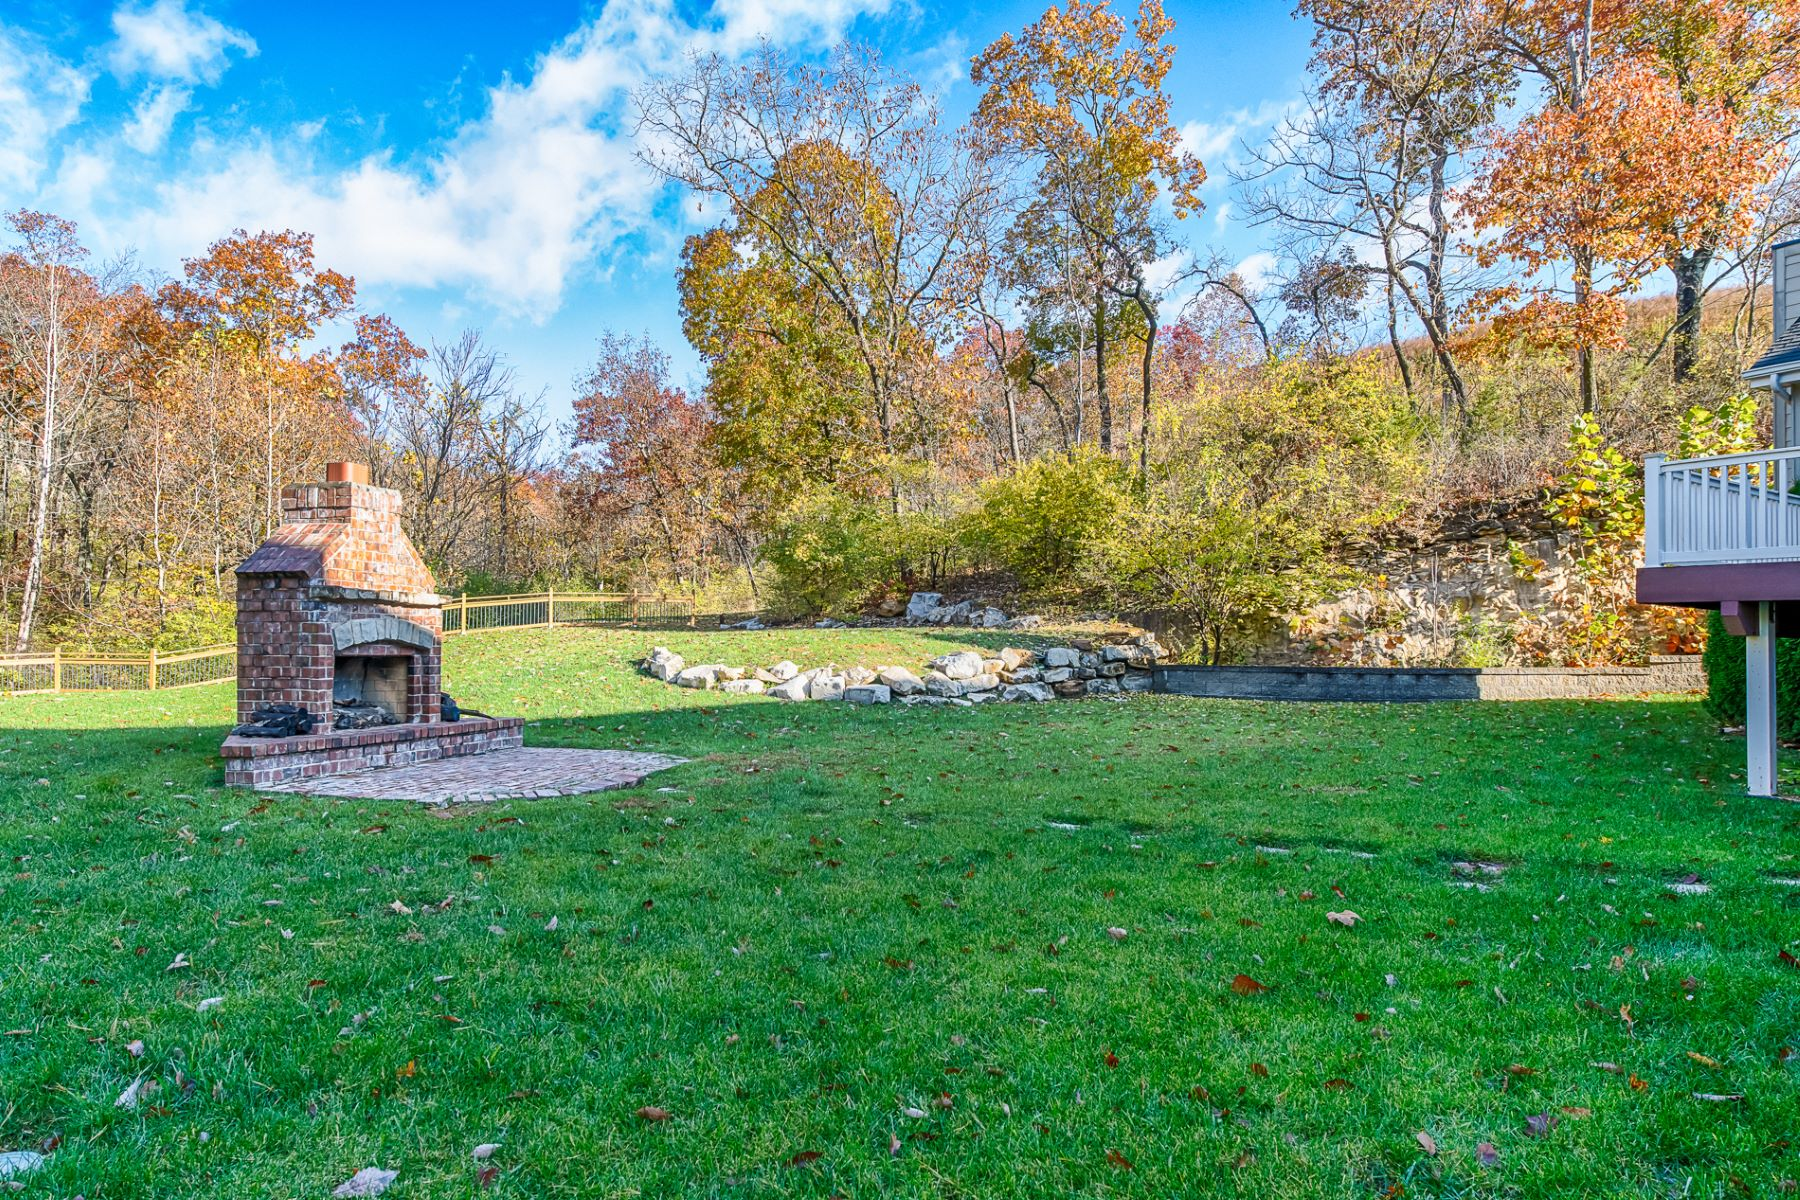 Additional photo for property listing at Cragwold Rd 11297 Cragwold Road Kirkwood, Missouri 63122 United States